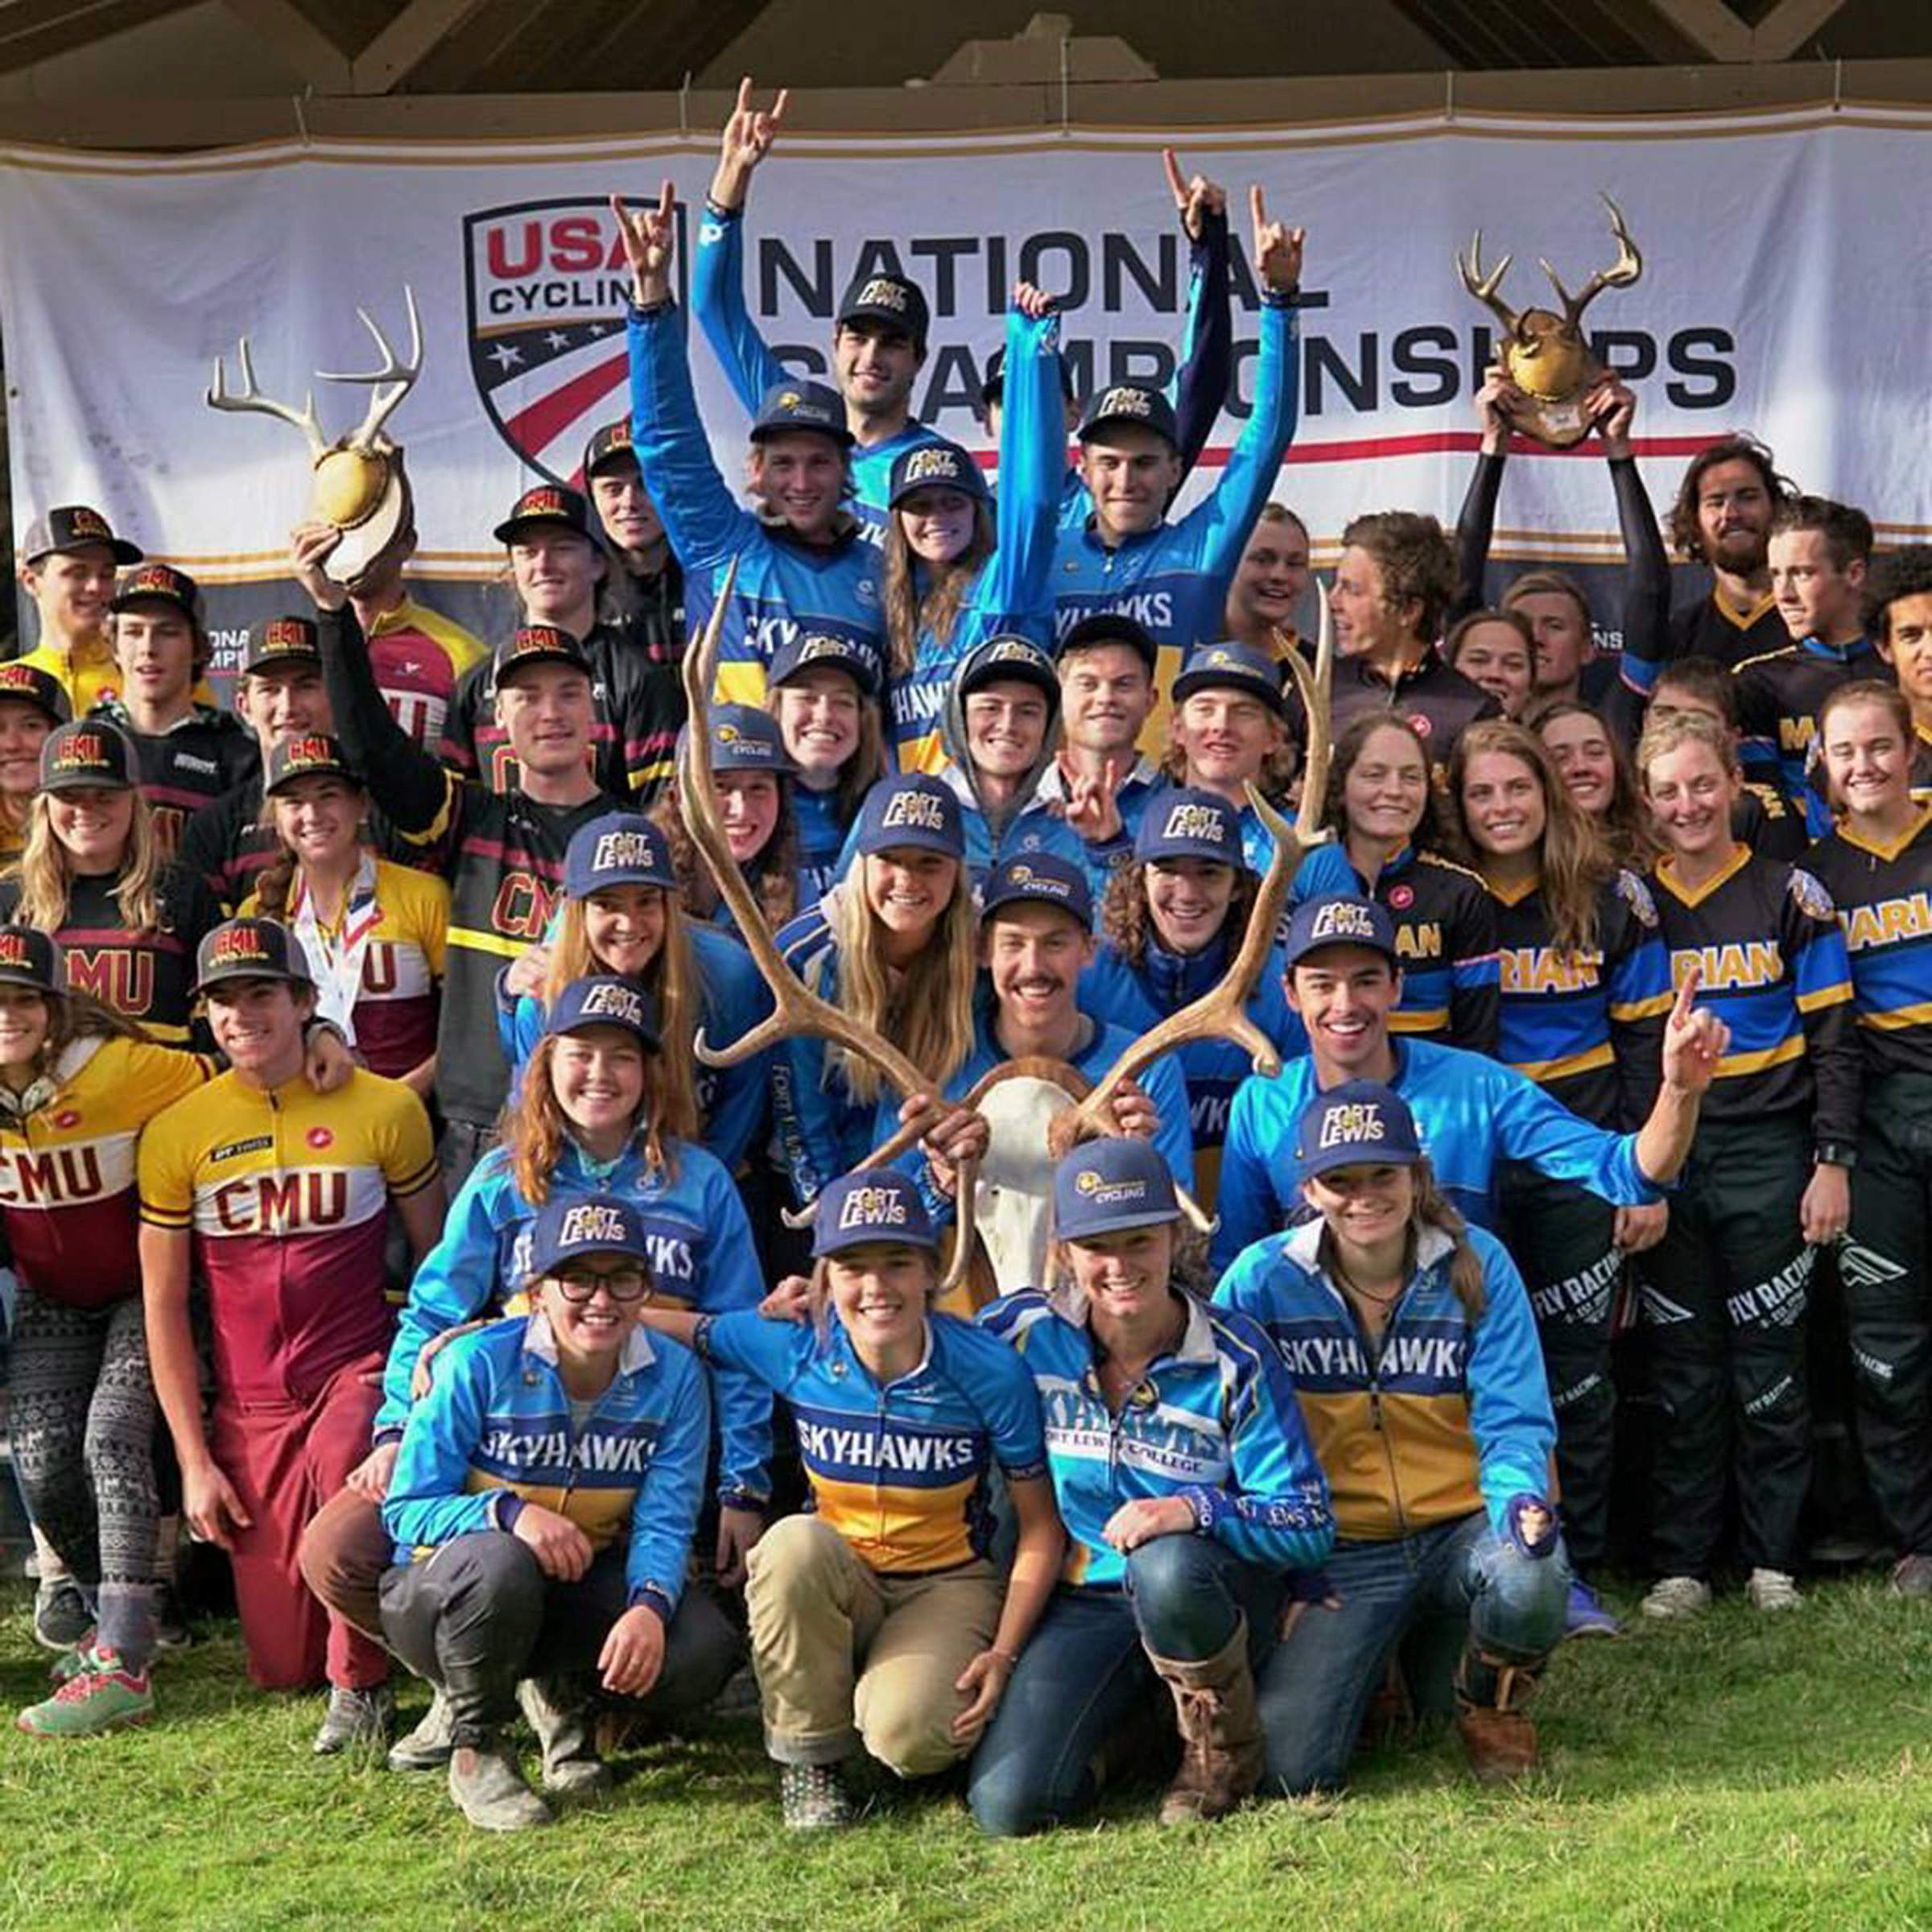 Durango Colorado Fort Lewis College cycling claims 23rd national championship News 60x60 image